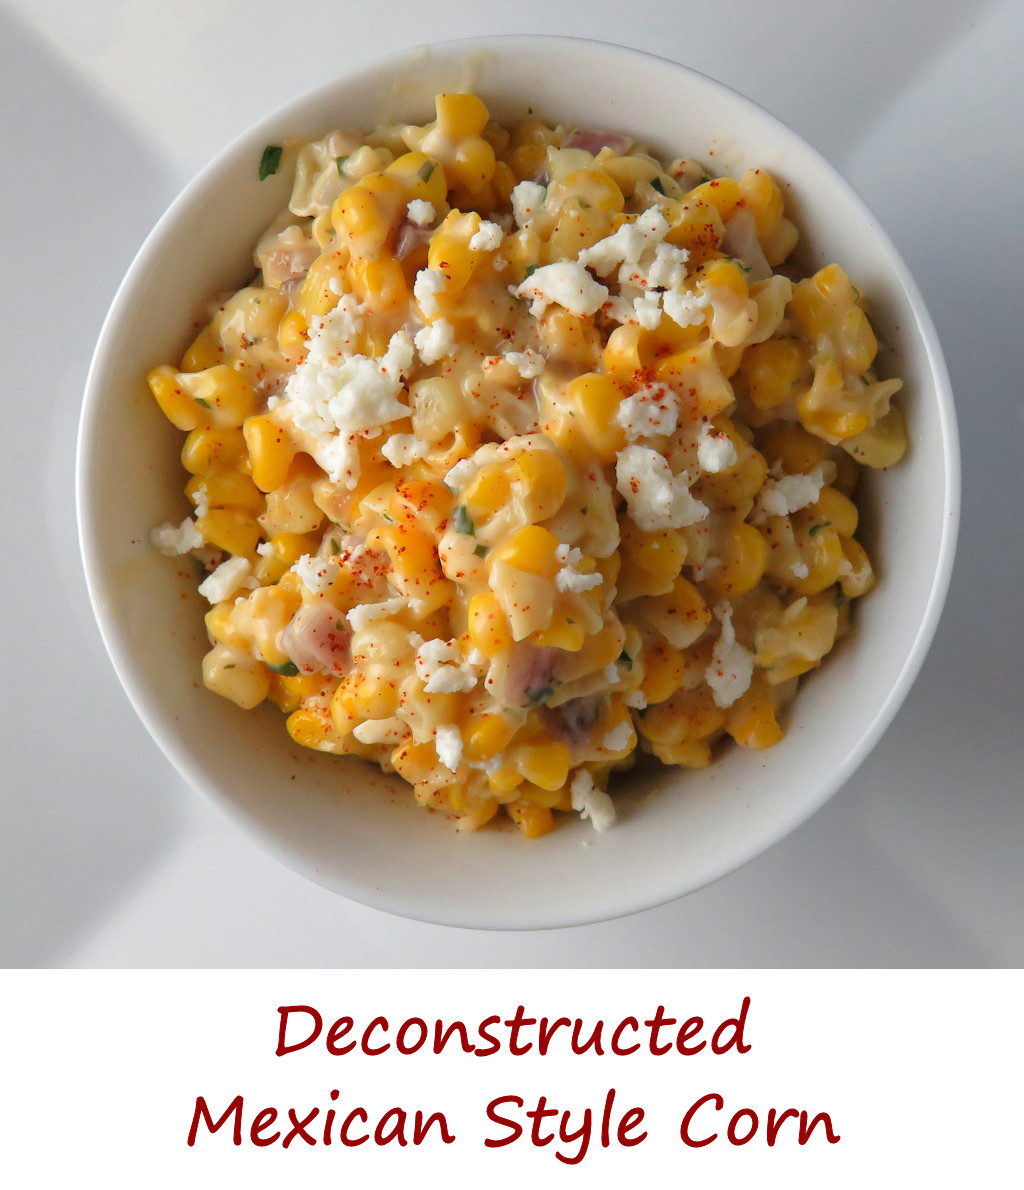 deconstructed-mexican-style-corn